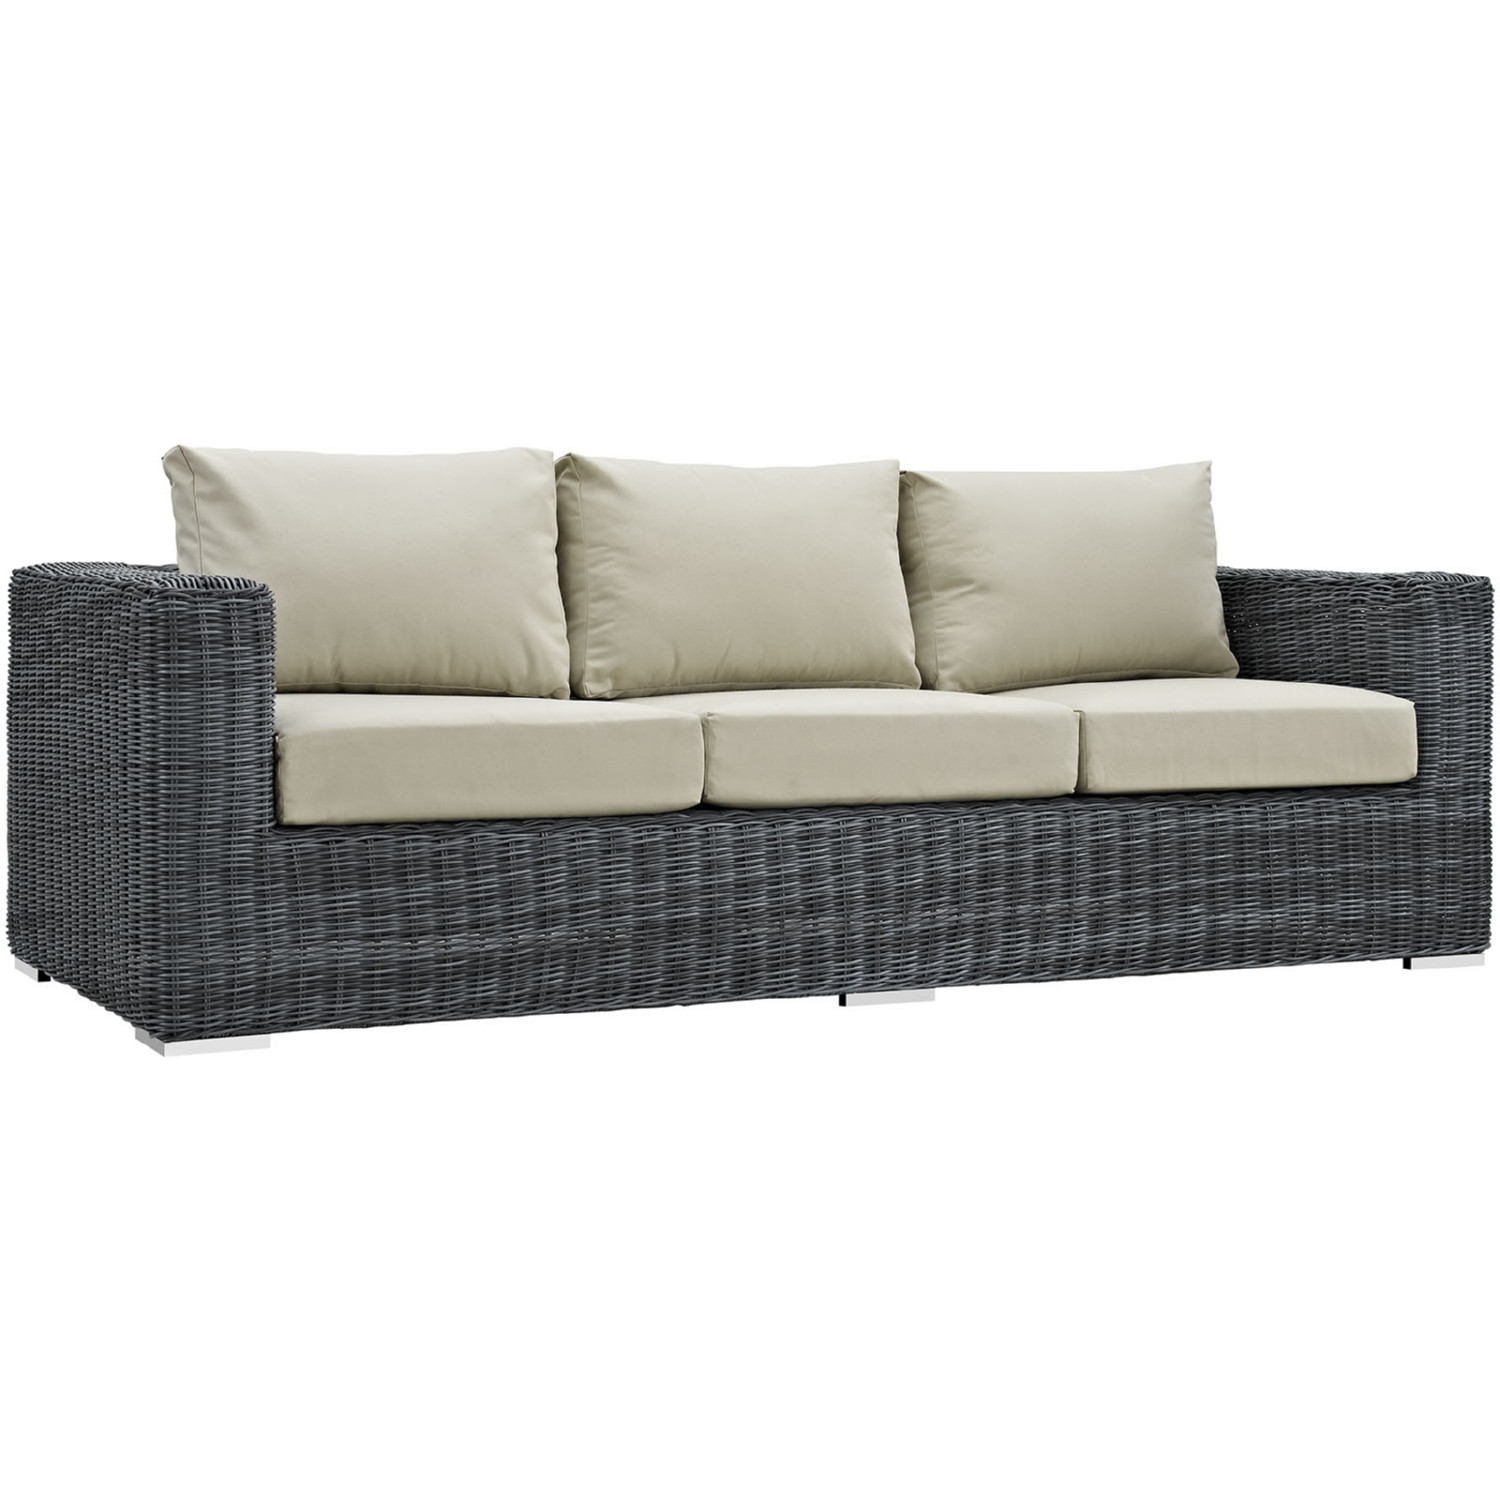 Polyrattan Sofa Summon Outdoor Patio Sofa In Canvas Poly Rattan W Antique Beige Sunbrella By Modway